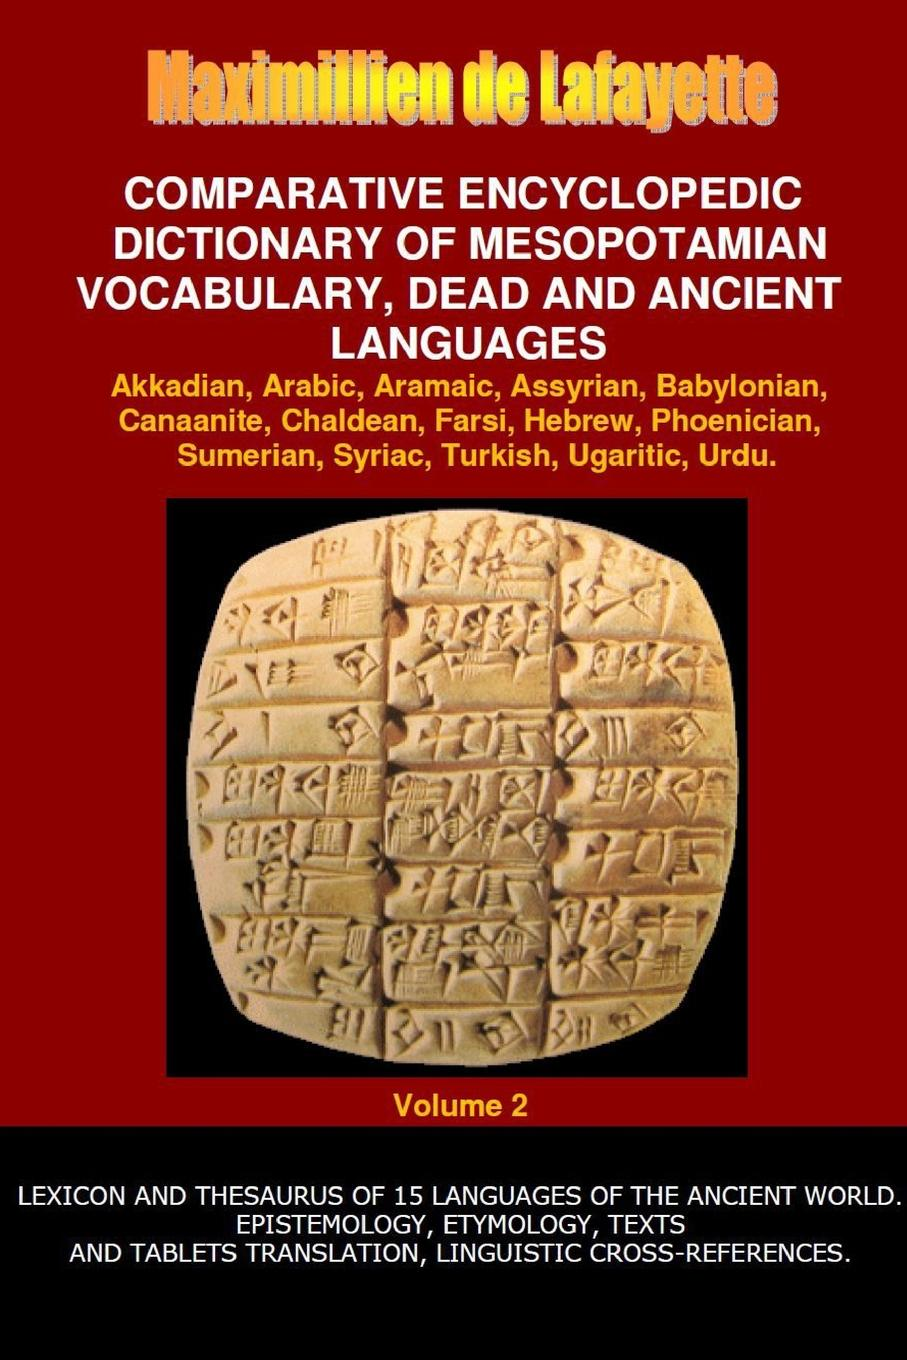 Maximillien De Lafayette V2.Comparative Encyclopedic Dictionary of Mesopotamian Vocabulary Dead . Ancient Languages larry a nichols george a mather alvin j schmidt encyclopedic dictionary of cults sects and world religions